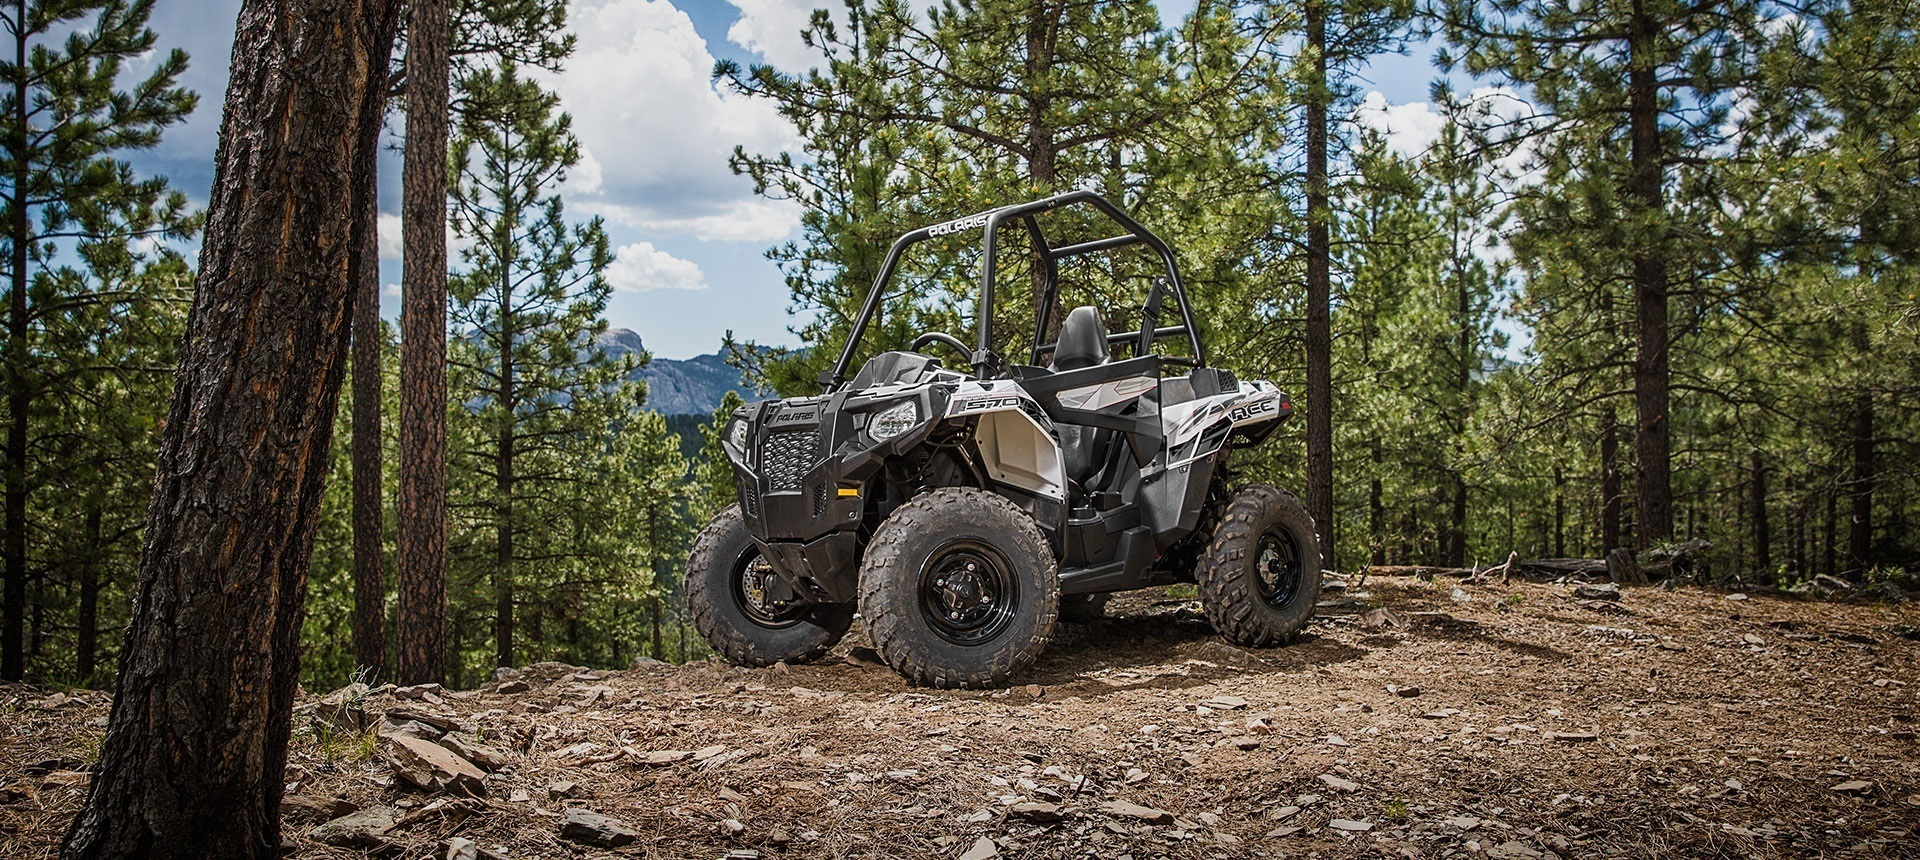 2019 Polaris Ace 570 EPS in Cochranville, Pennsylvania